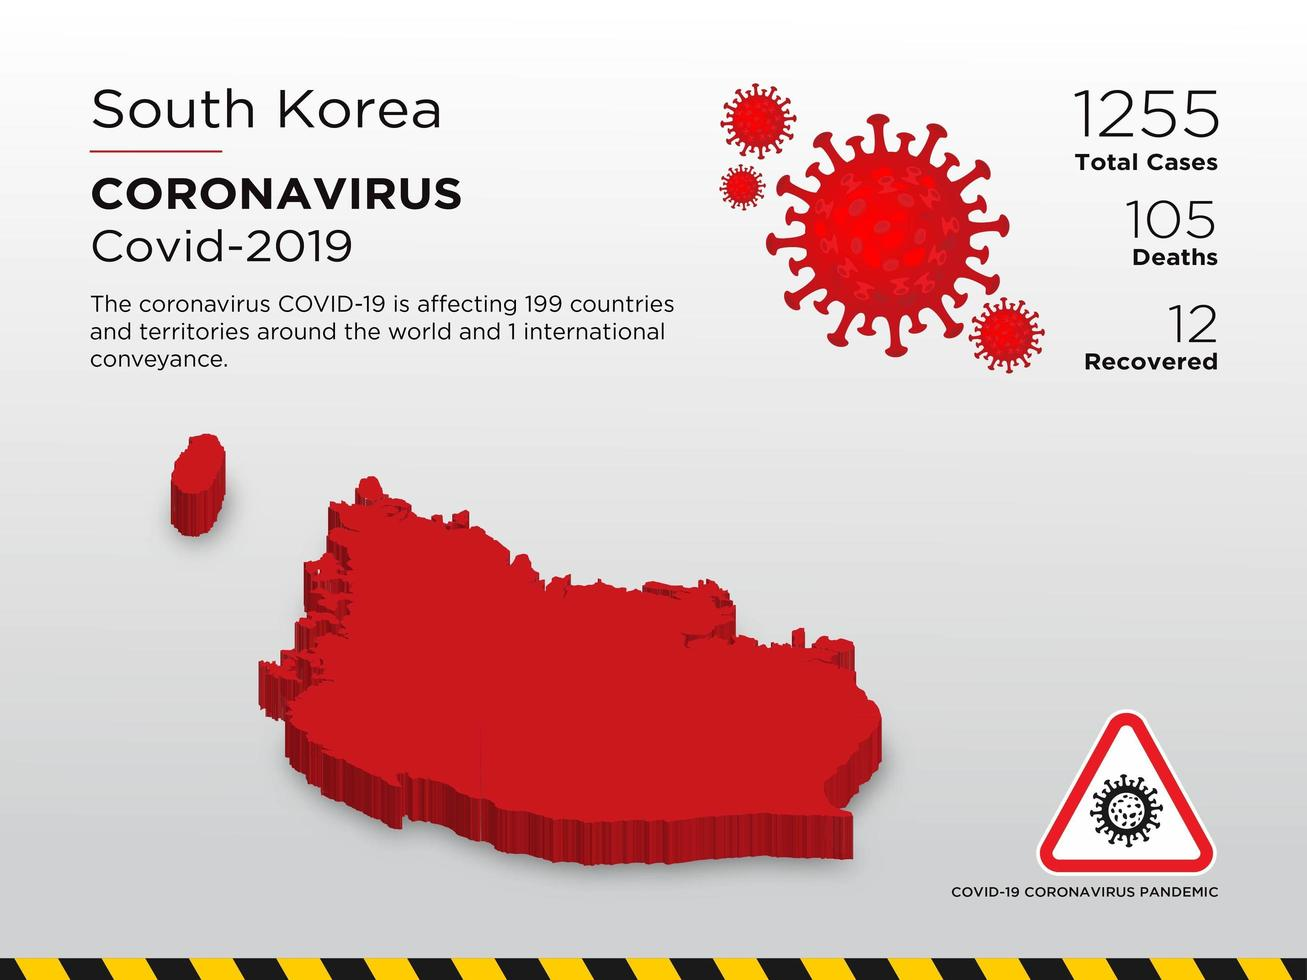 South Koria Affected Country Map of Coronavirus Spread  vector